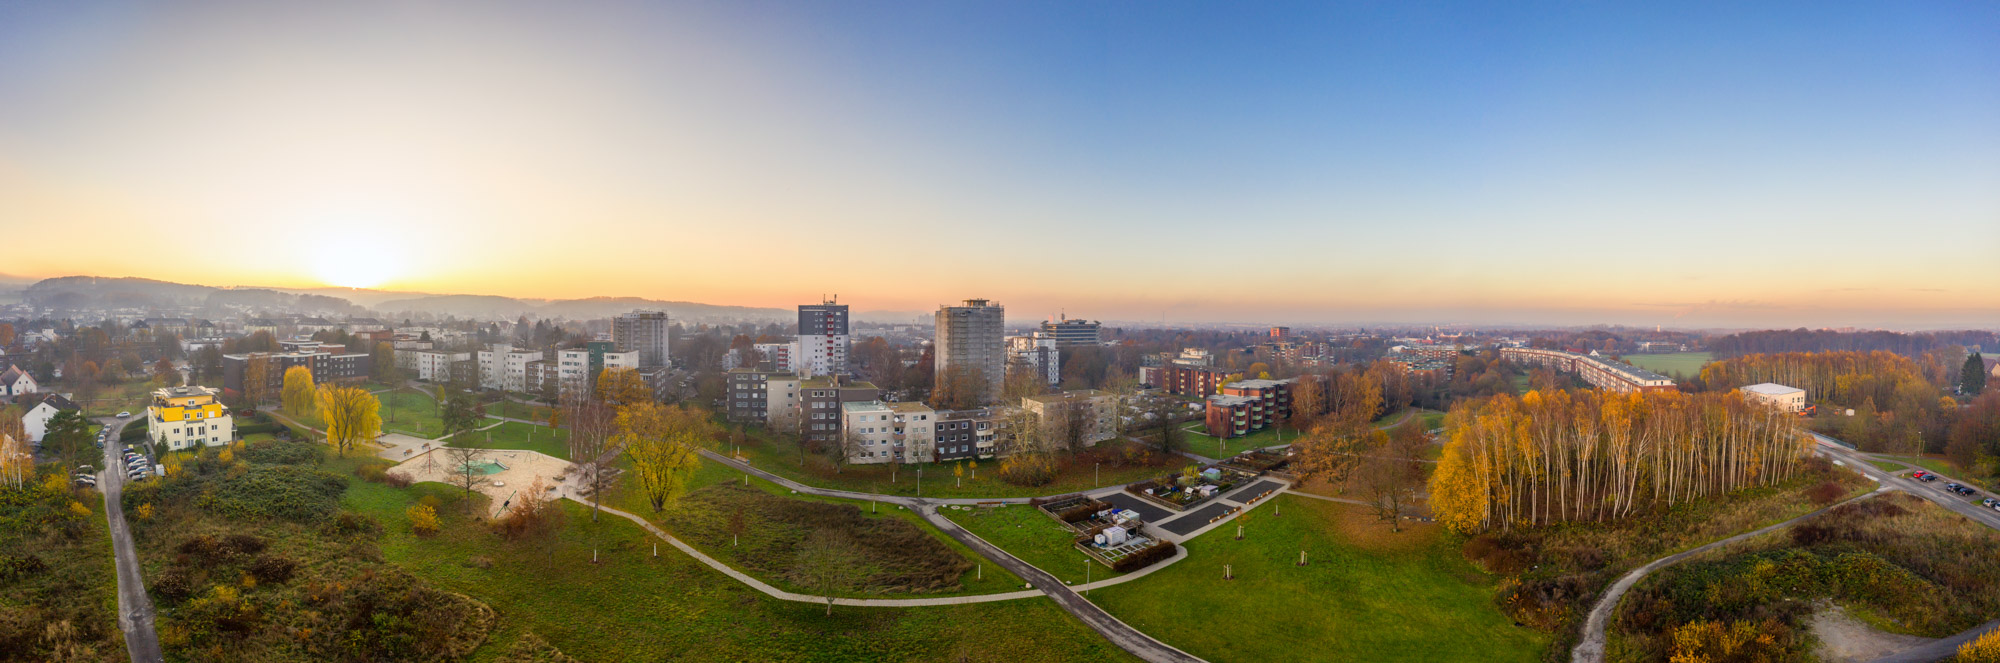 Residential area on 'Stralsunder Straße' in Bielefeld-Stieghorst (Panorama).